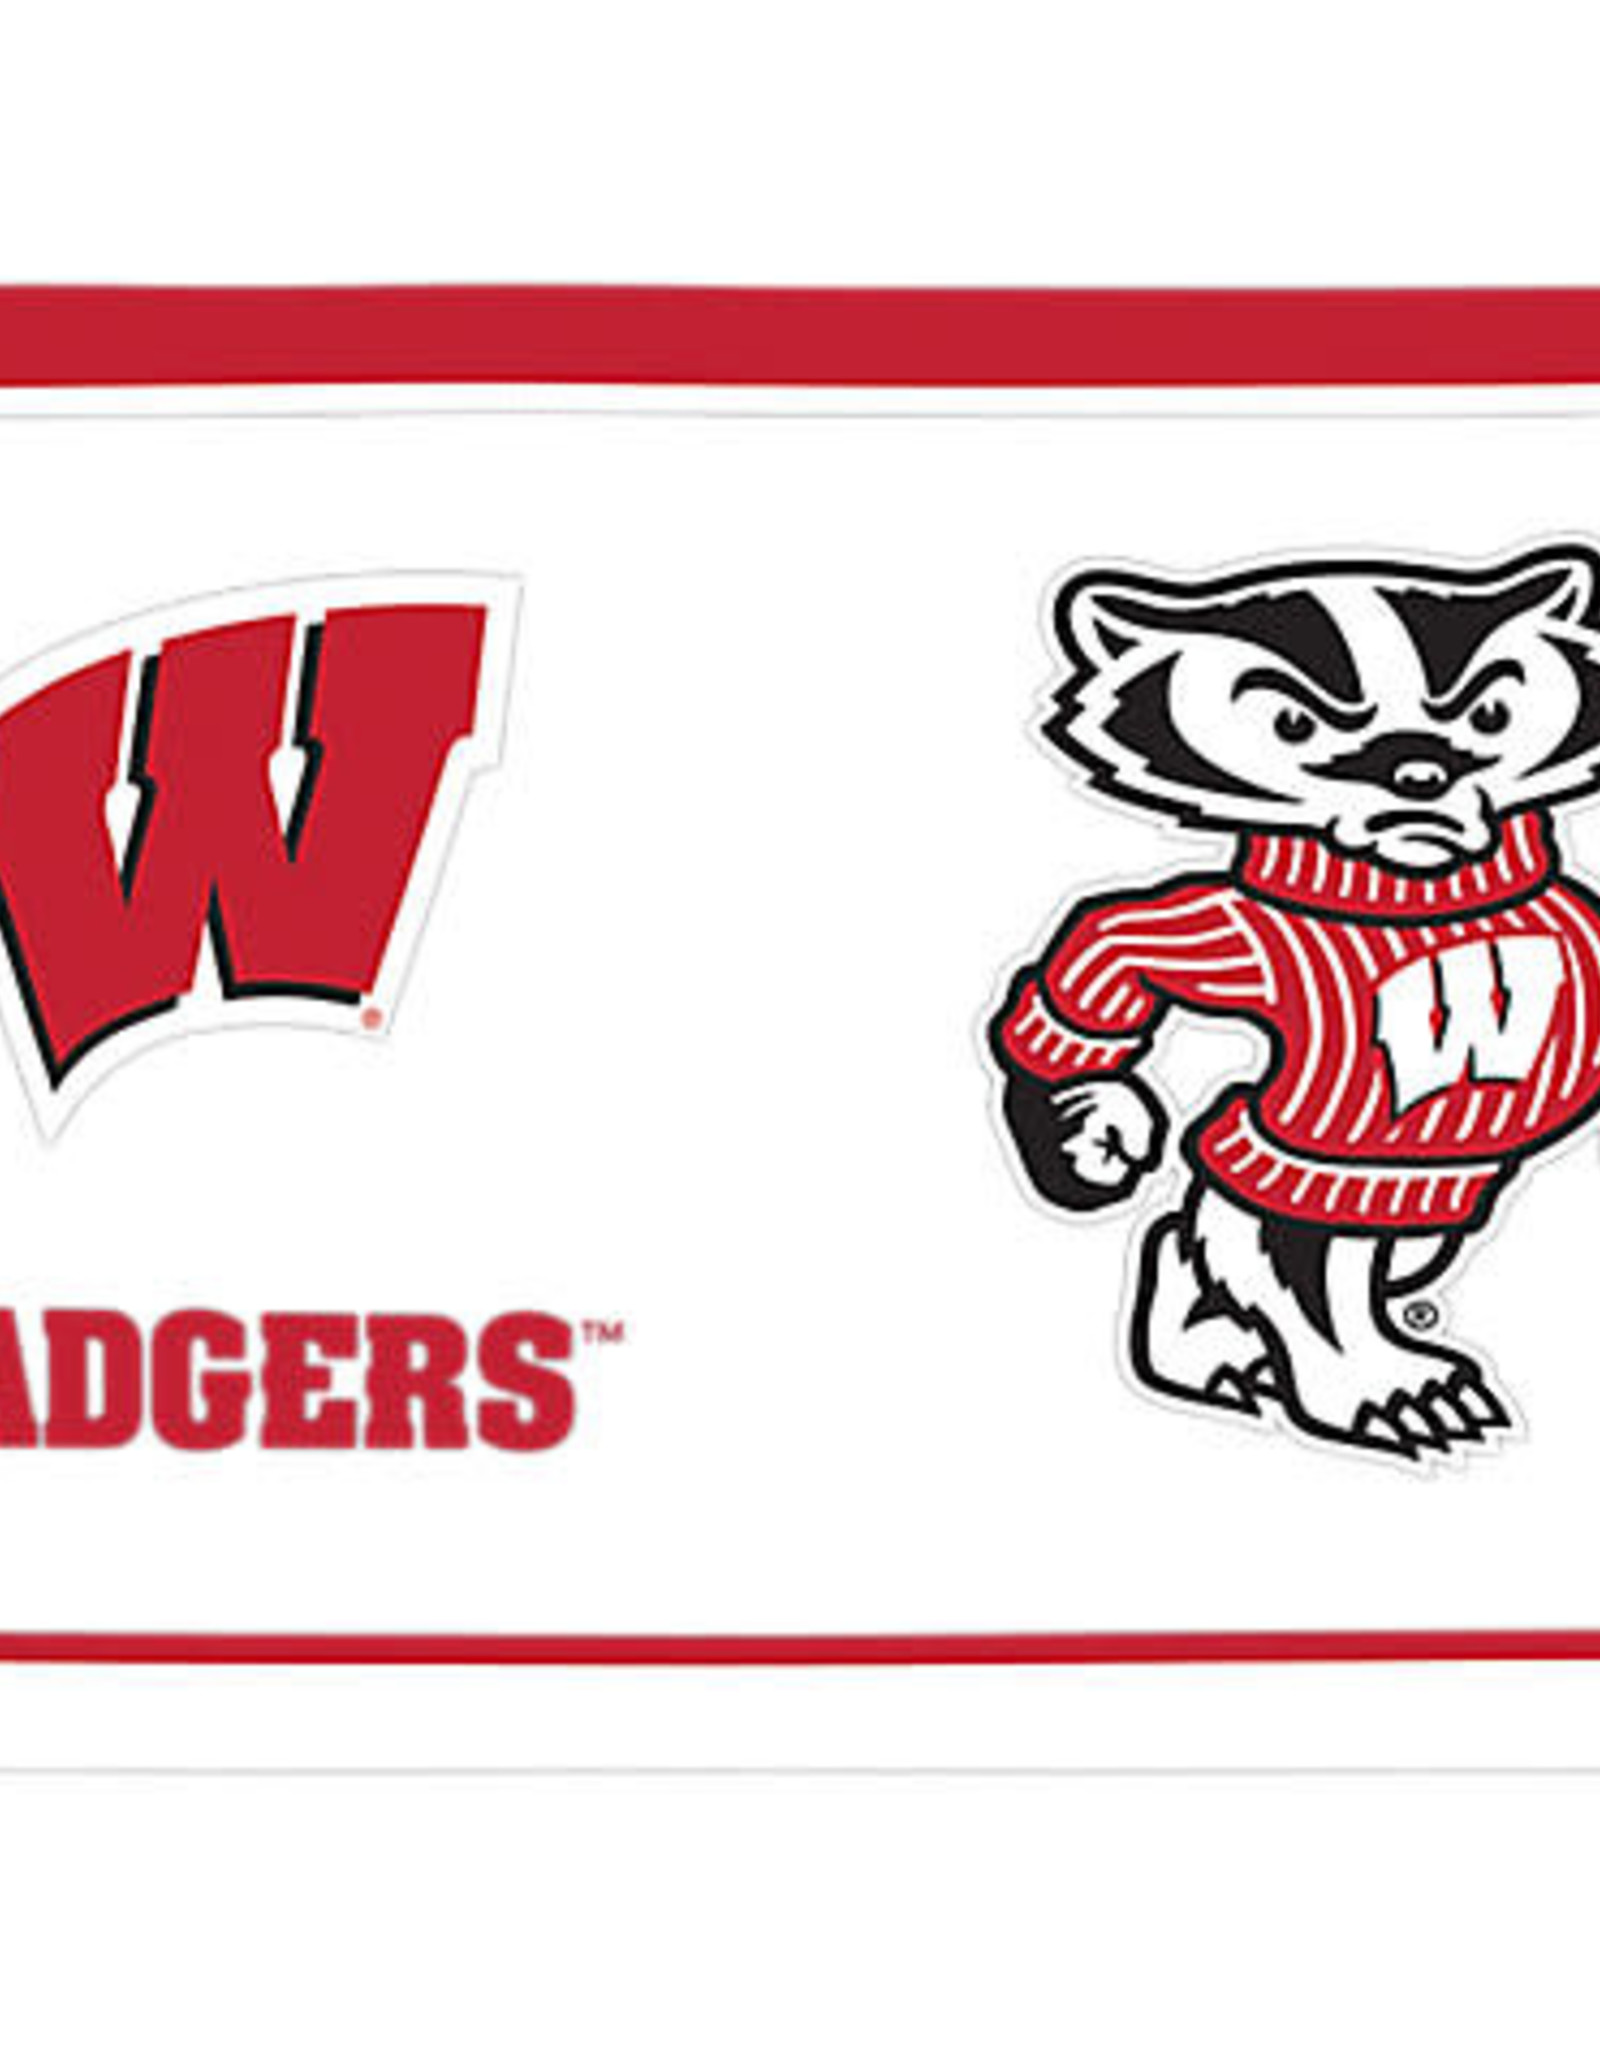 Tervis Tumbler 16oz/lid Wisconsin Badgers Tradition